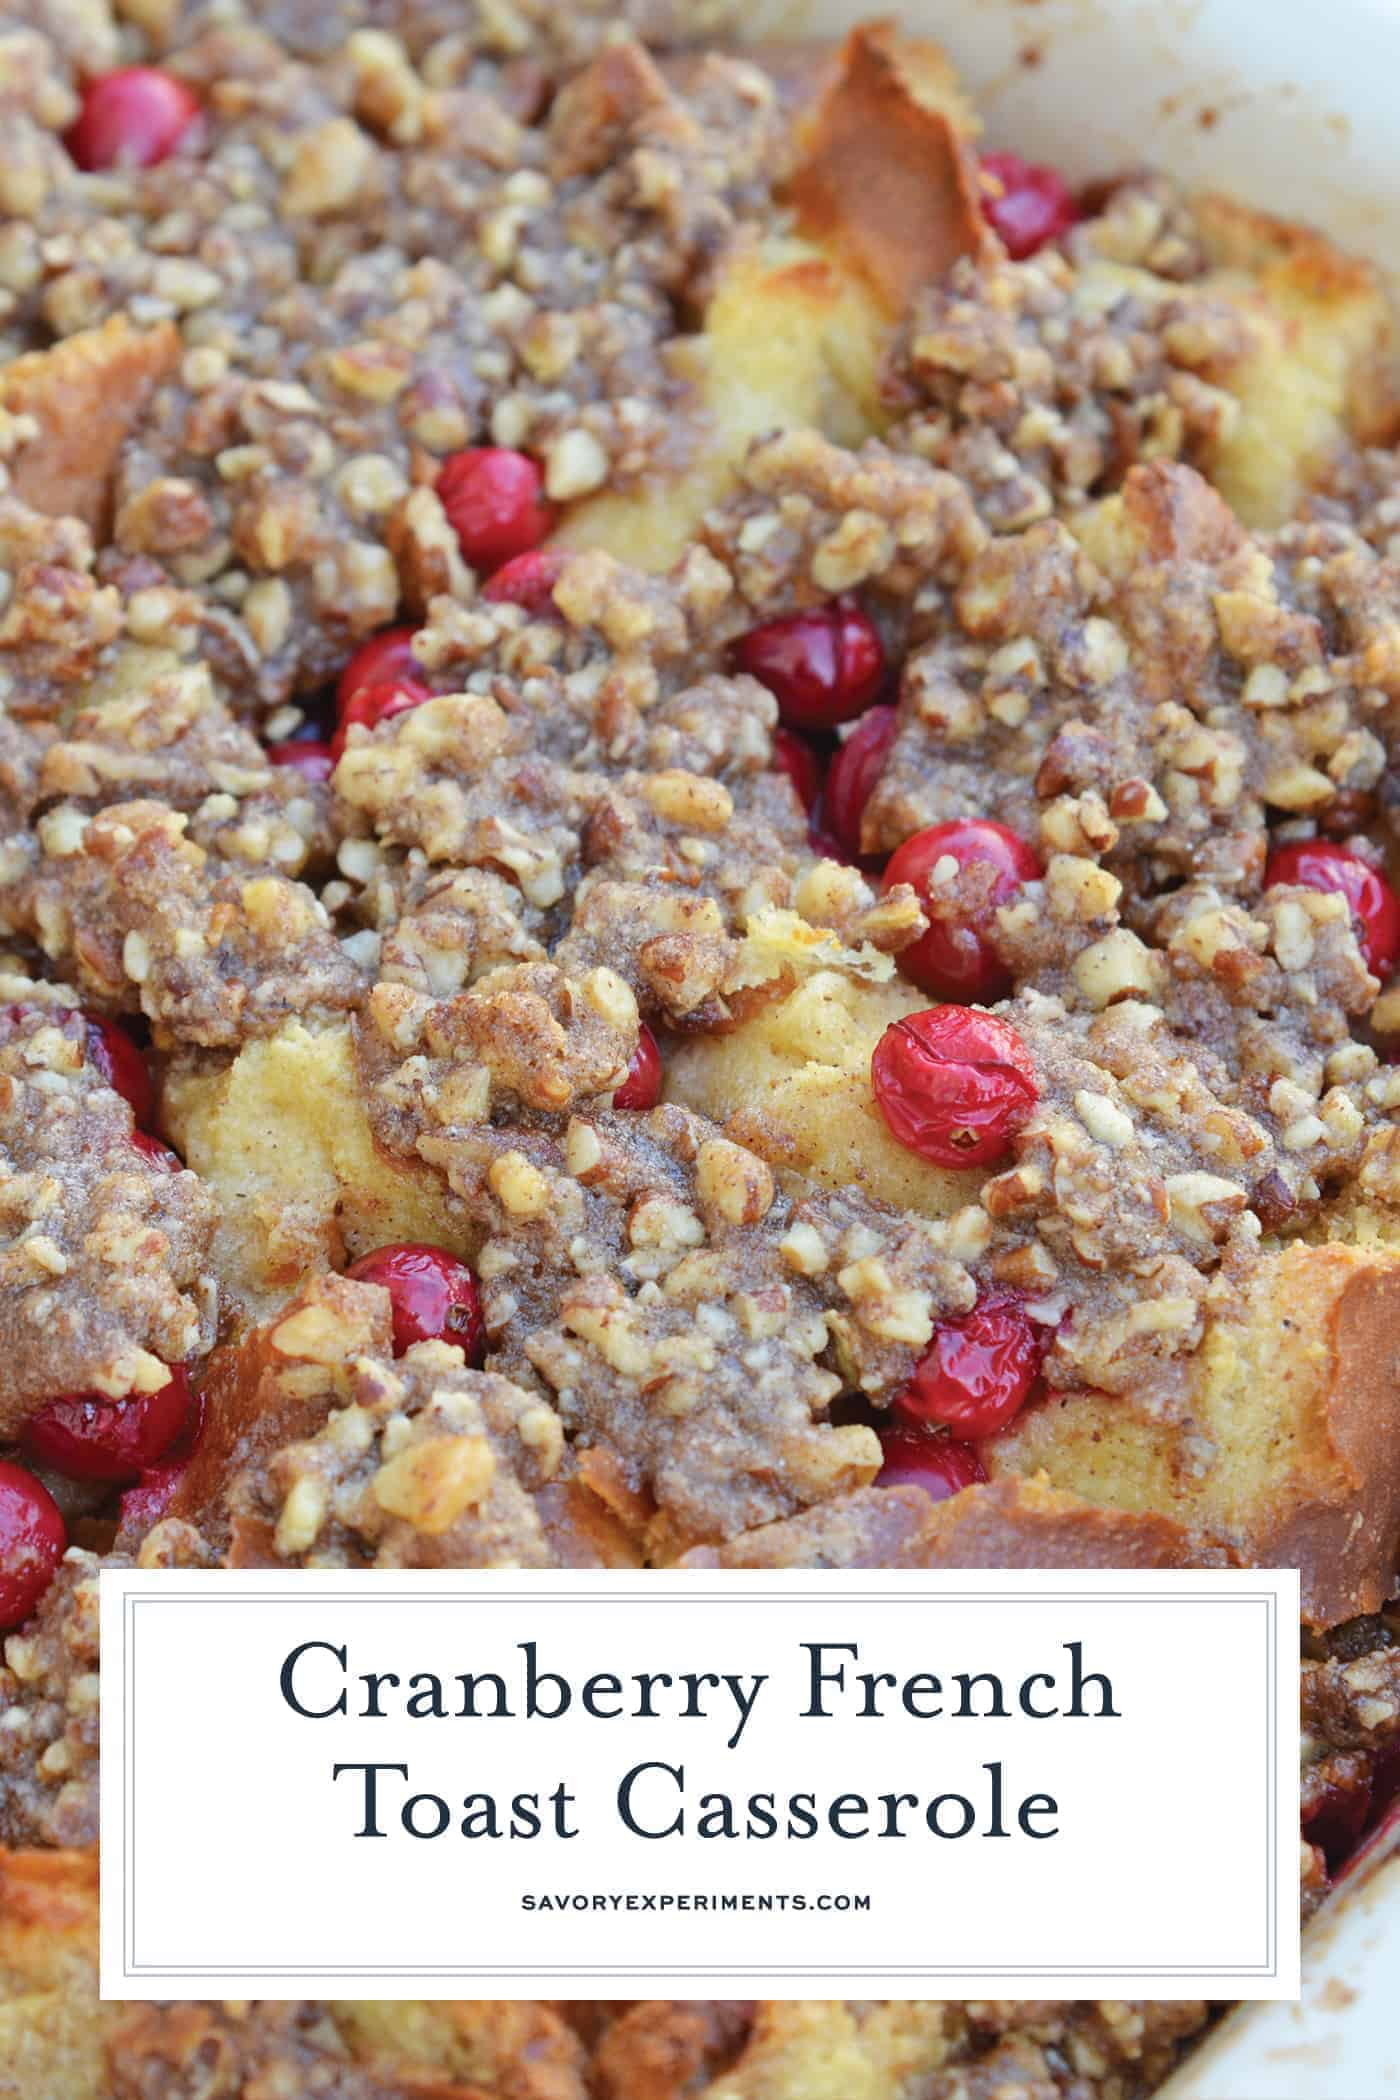 Cranberry French Toast Casserole is one of the best recipes using cranberries you'll ever make! A French toast casserole perfect for Christmas breakfast! #frenchtoastcasserole #christmasbreakfast #recipesthatusecranberries www.savoryexperiments.com